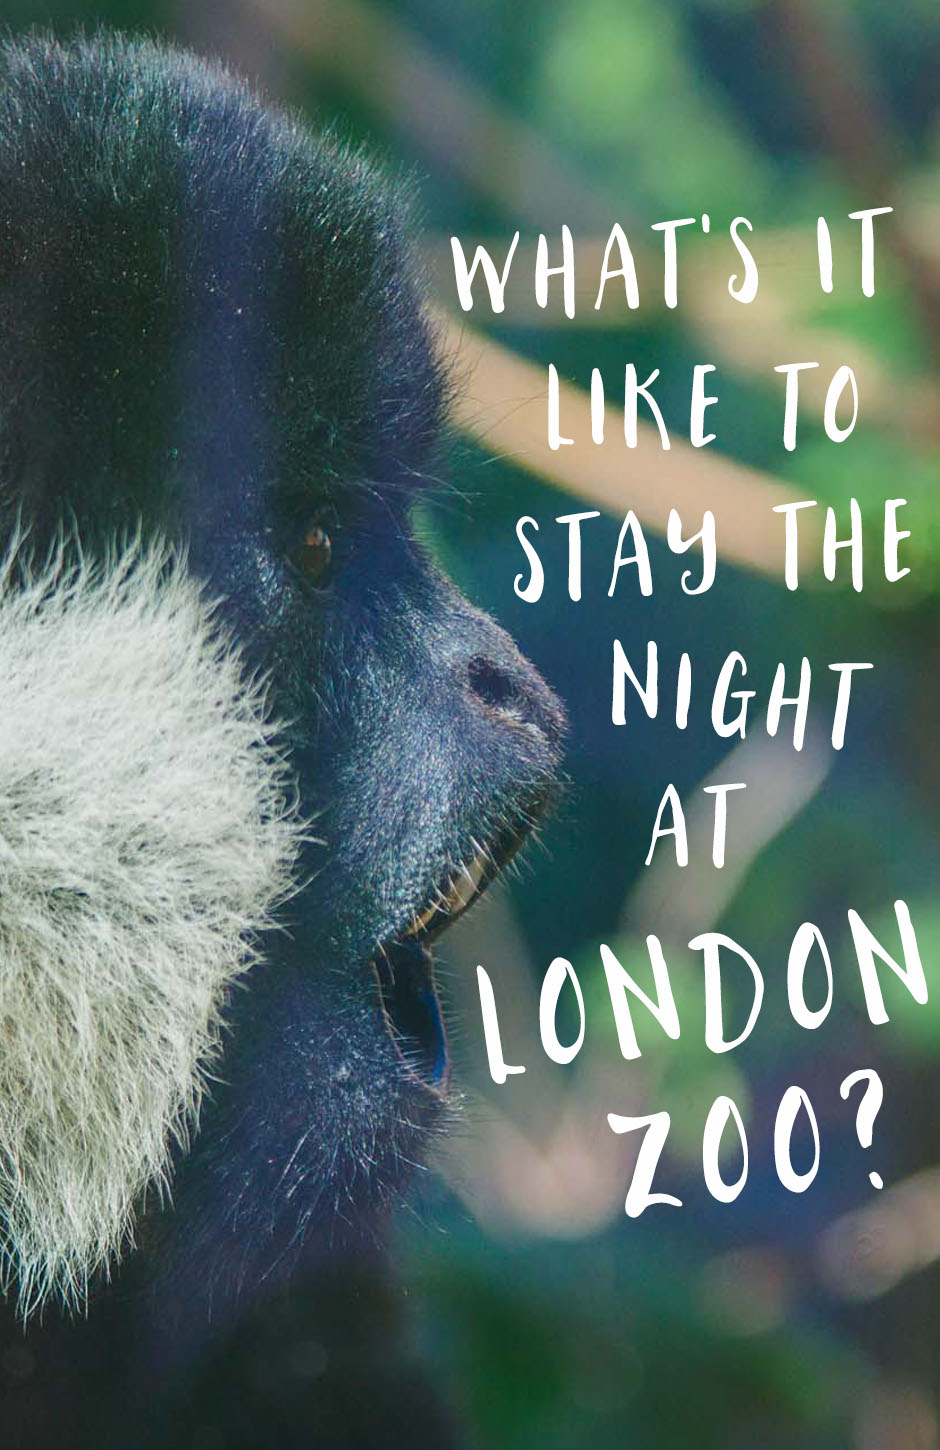 What's it like to spend the night at London Zoo? Our experience at the Gir Lion Lodge.